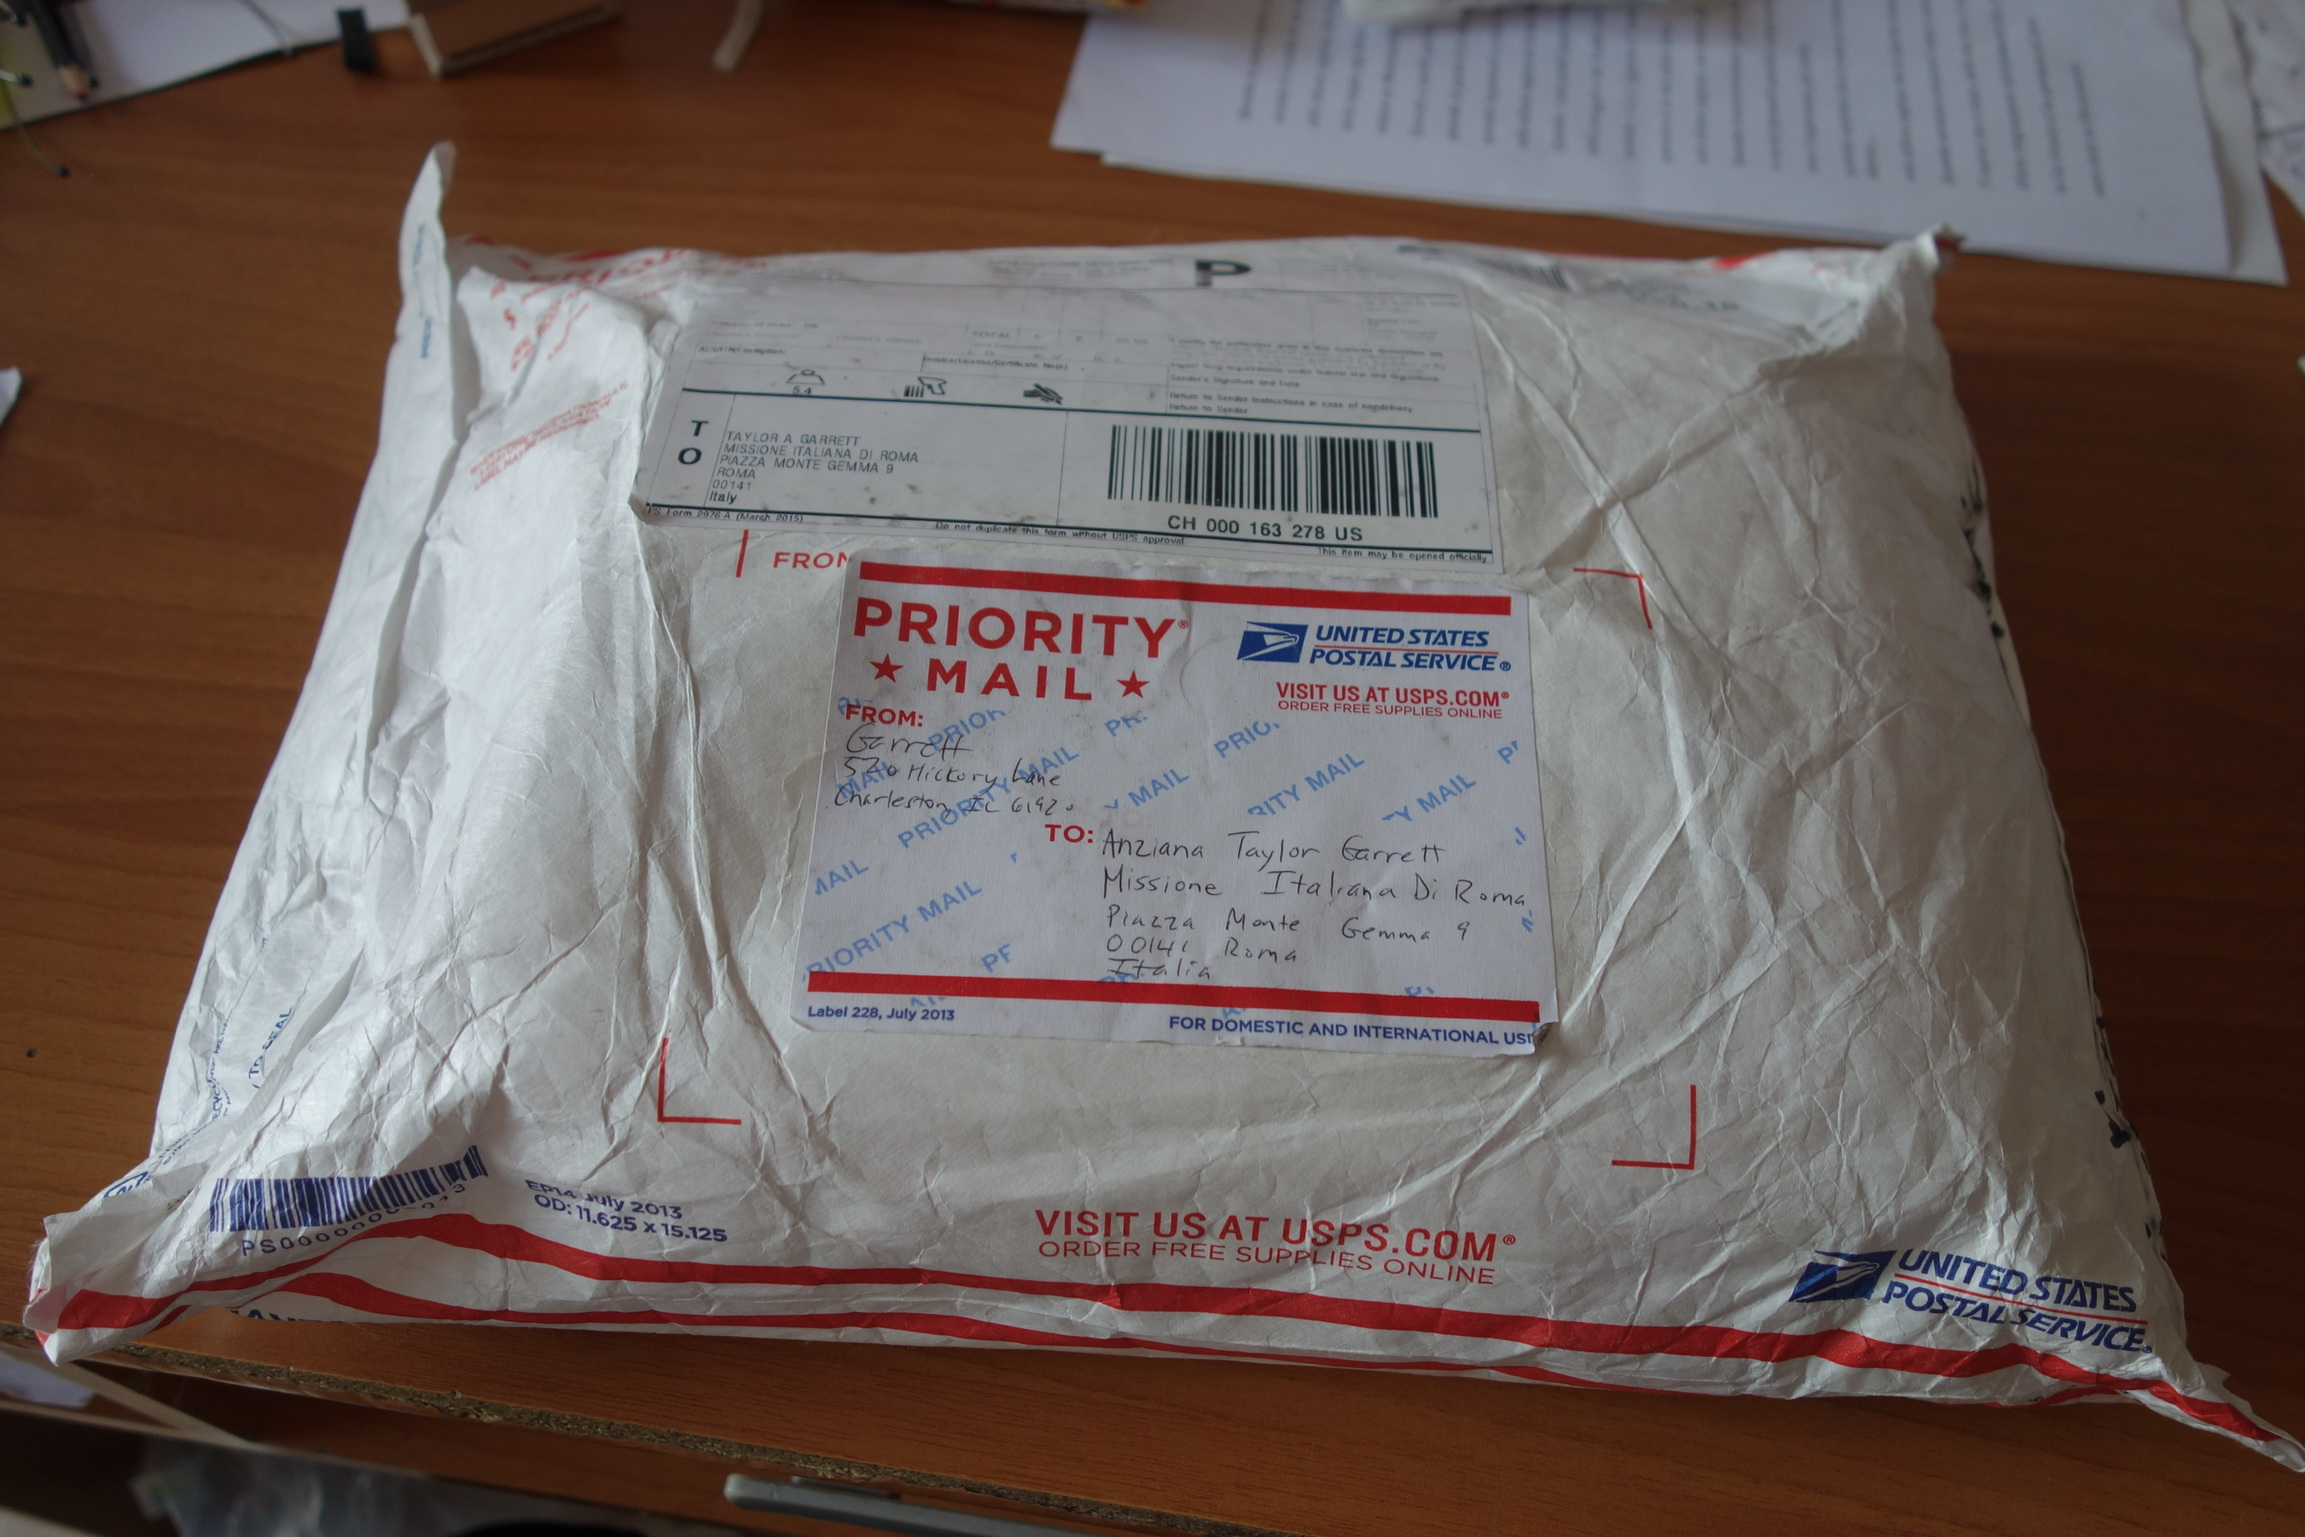 The birthday package